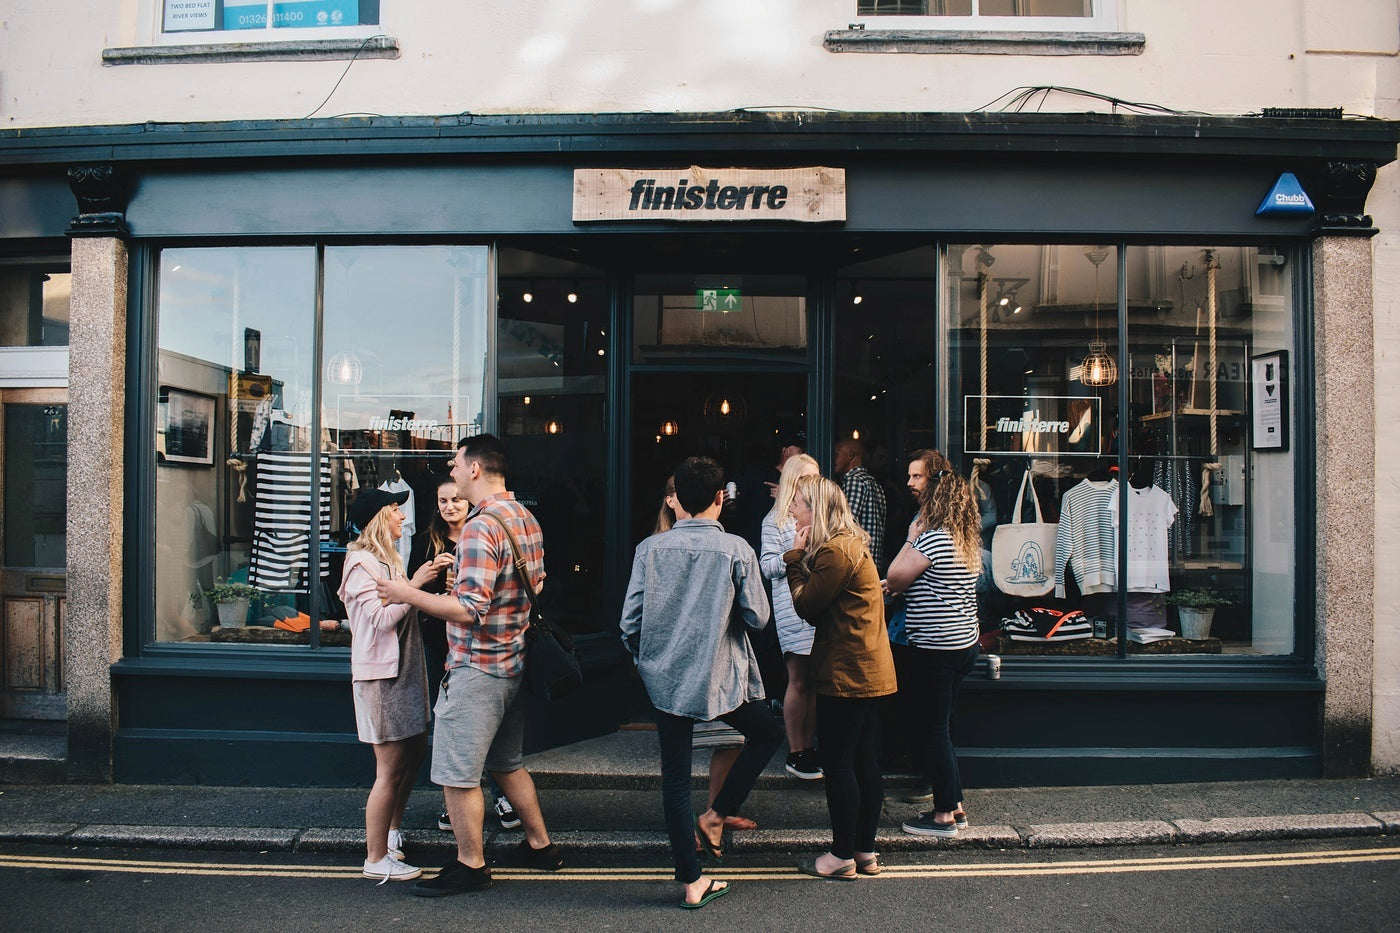 The Finisterre store in Falmouth